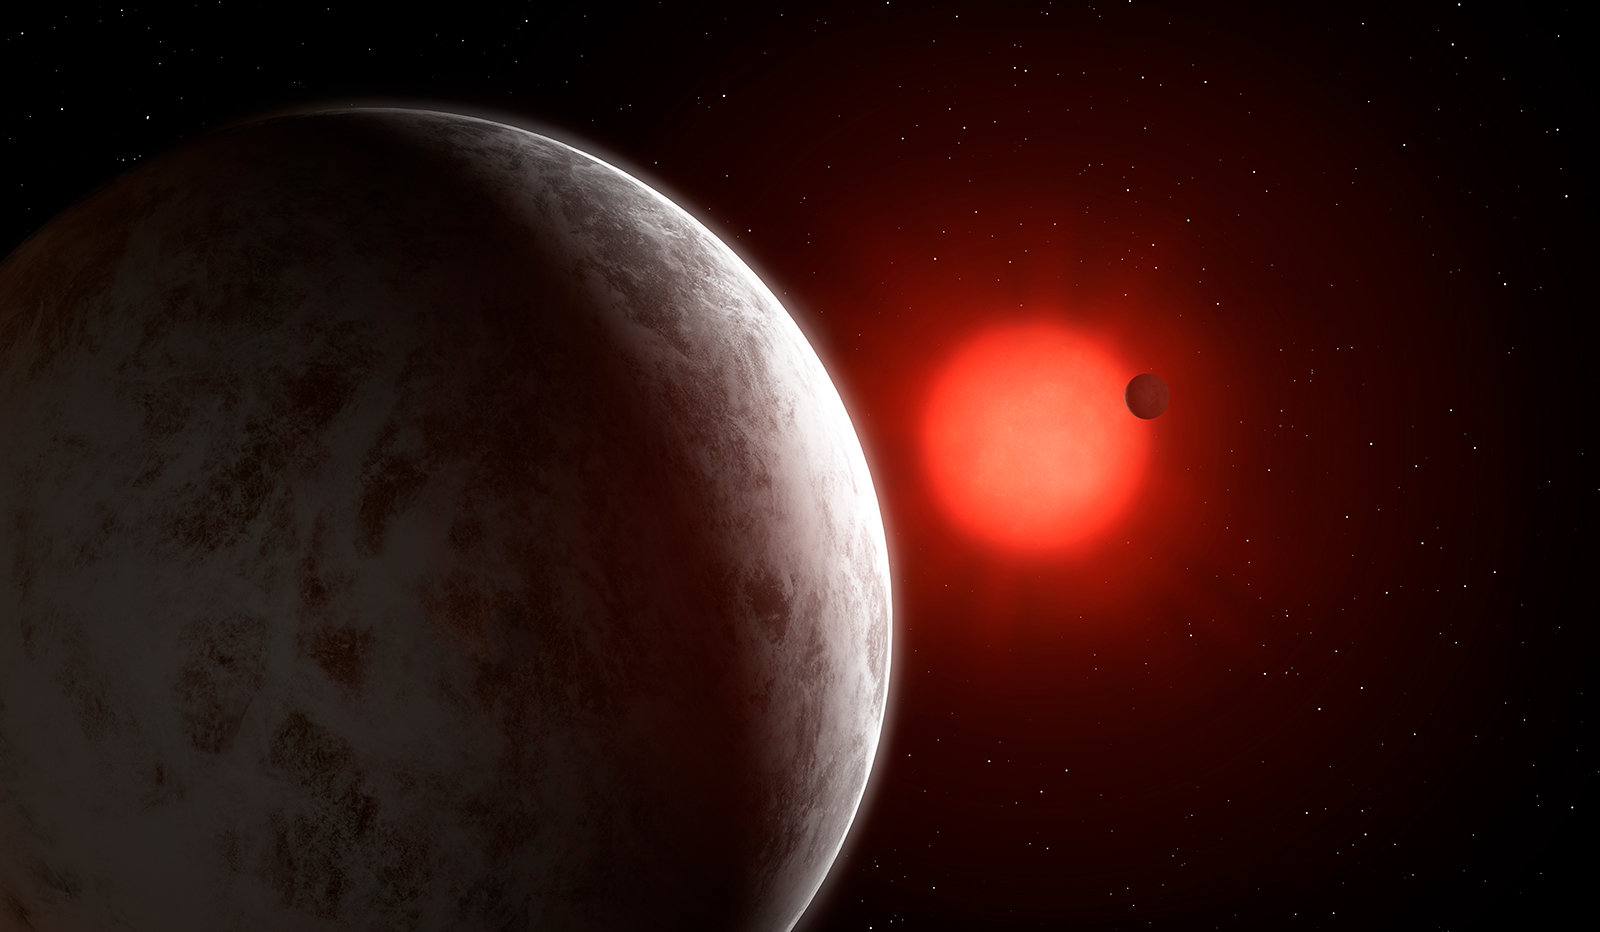 Astronomers find super-Earths orbiting a star 11 light-years away